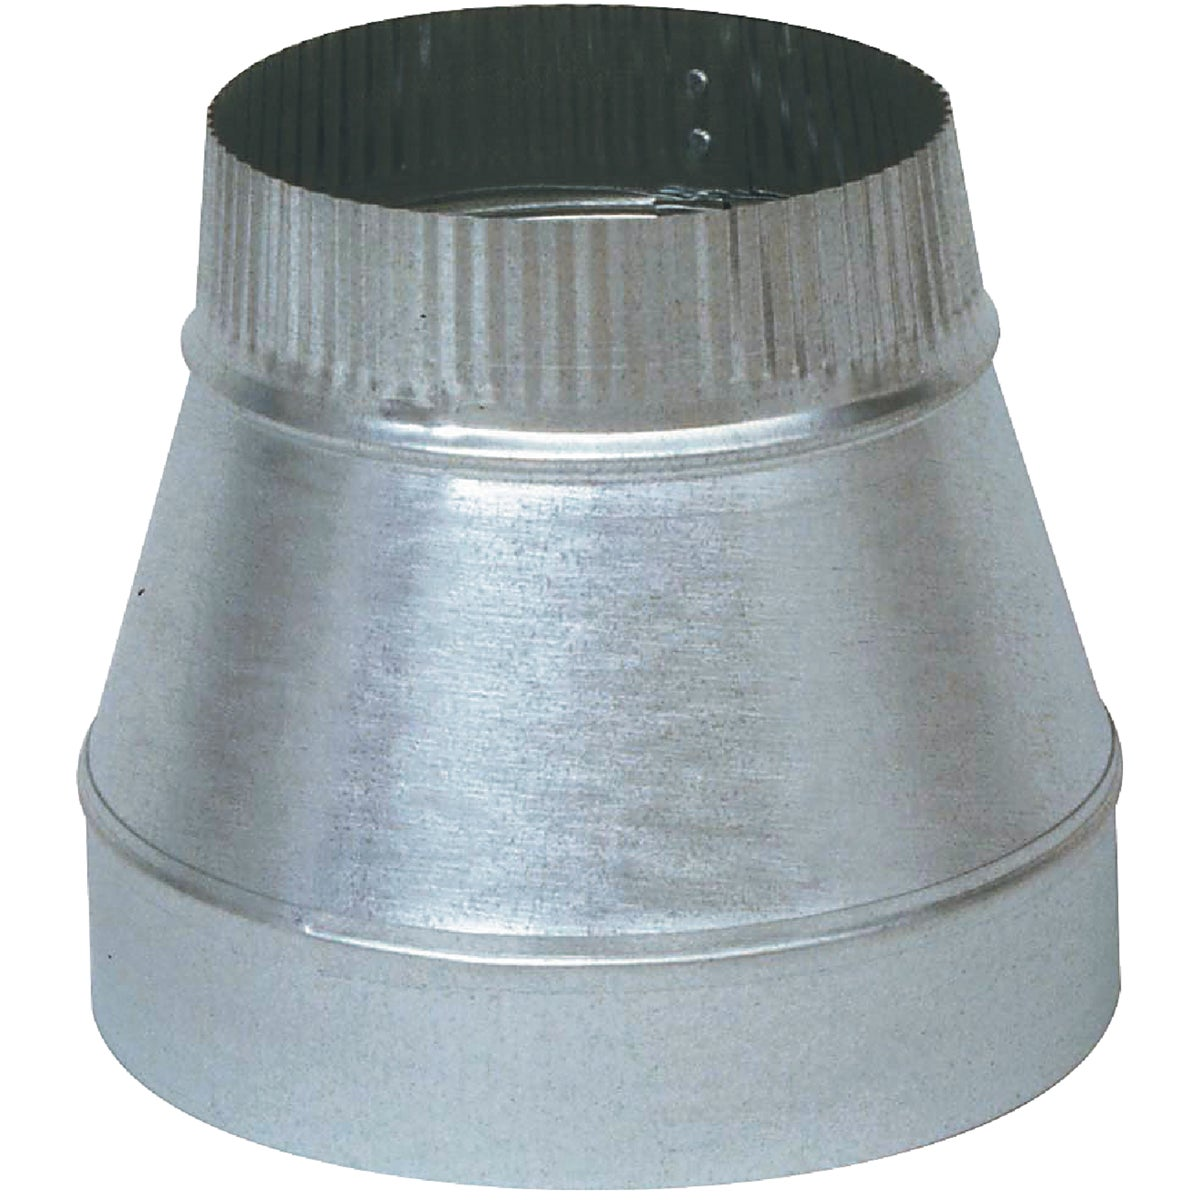 5X4 GALV REDUCER - GV0810-A by Imperial Mfg Group